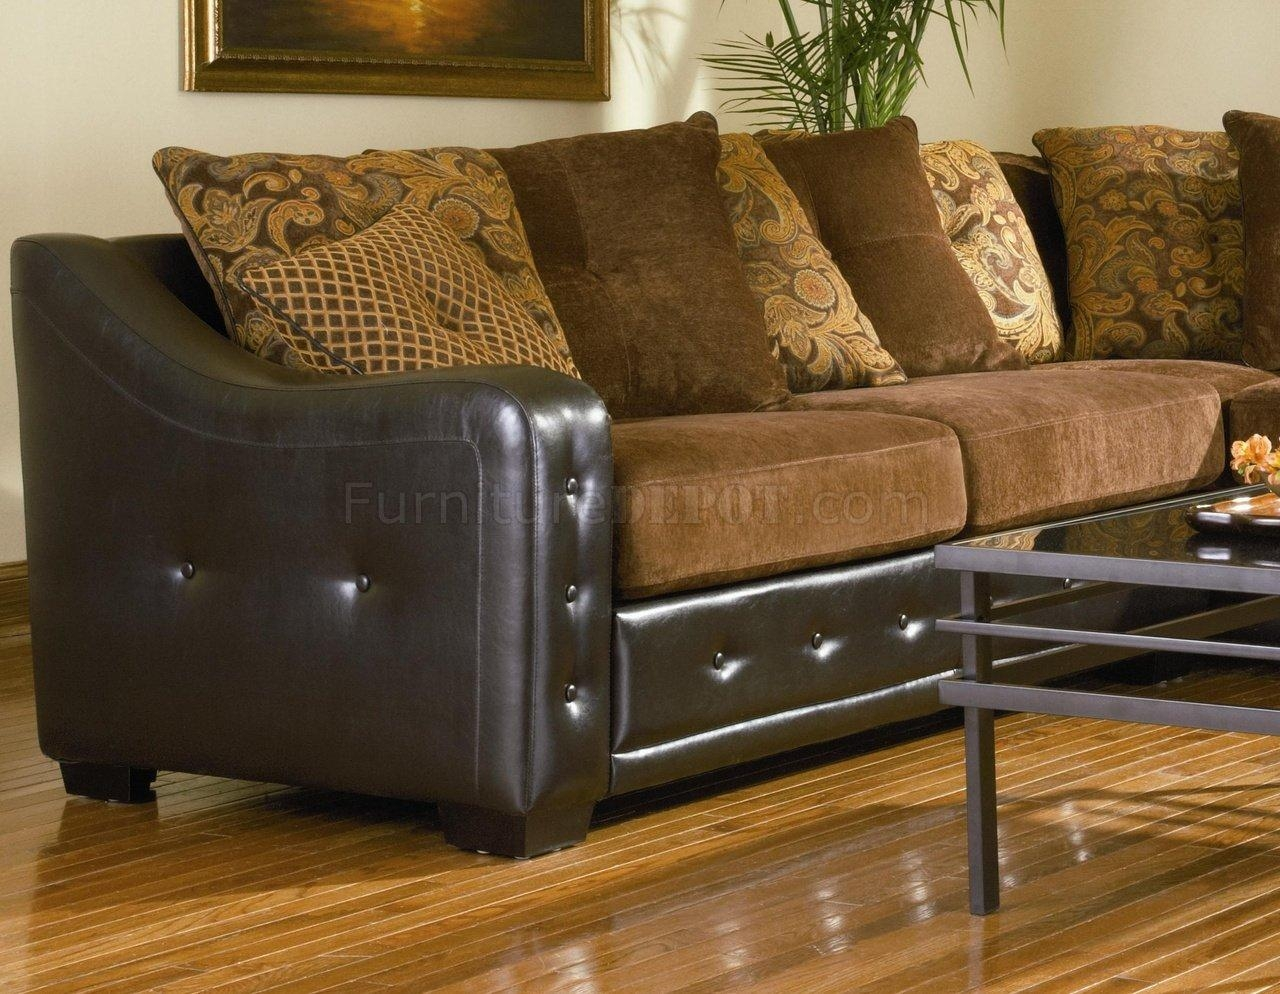 Sectional Sofa 503001 Chocolate Chenille/dark Brown Vinyl Base Intended For Leather And Chenille Sectional (Image 17 of 20)